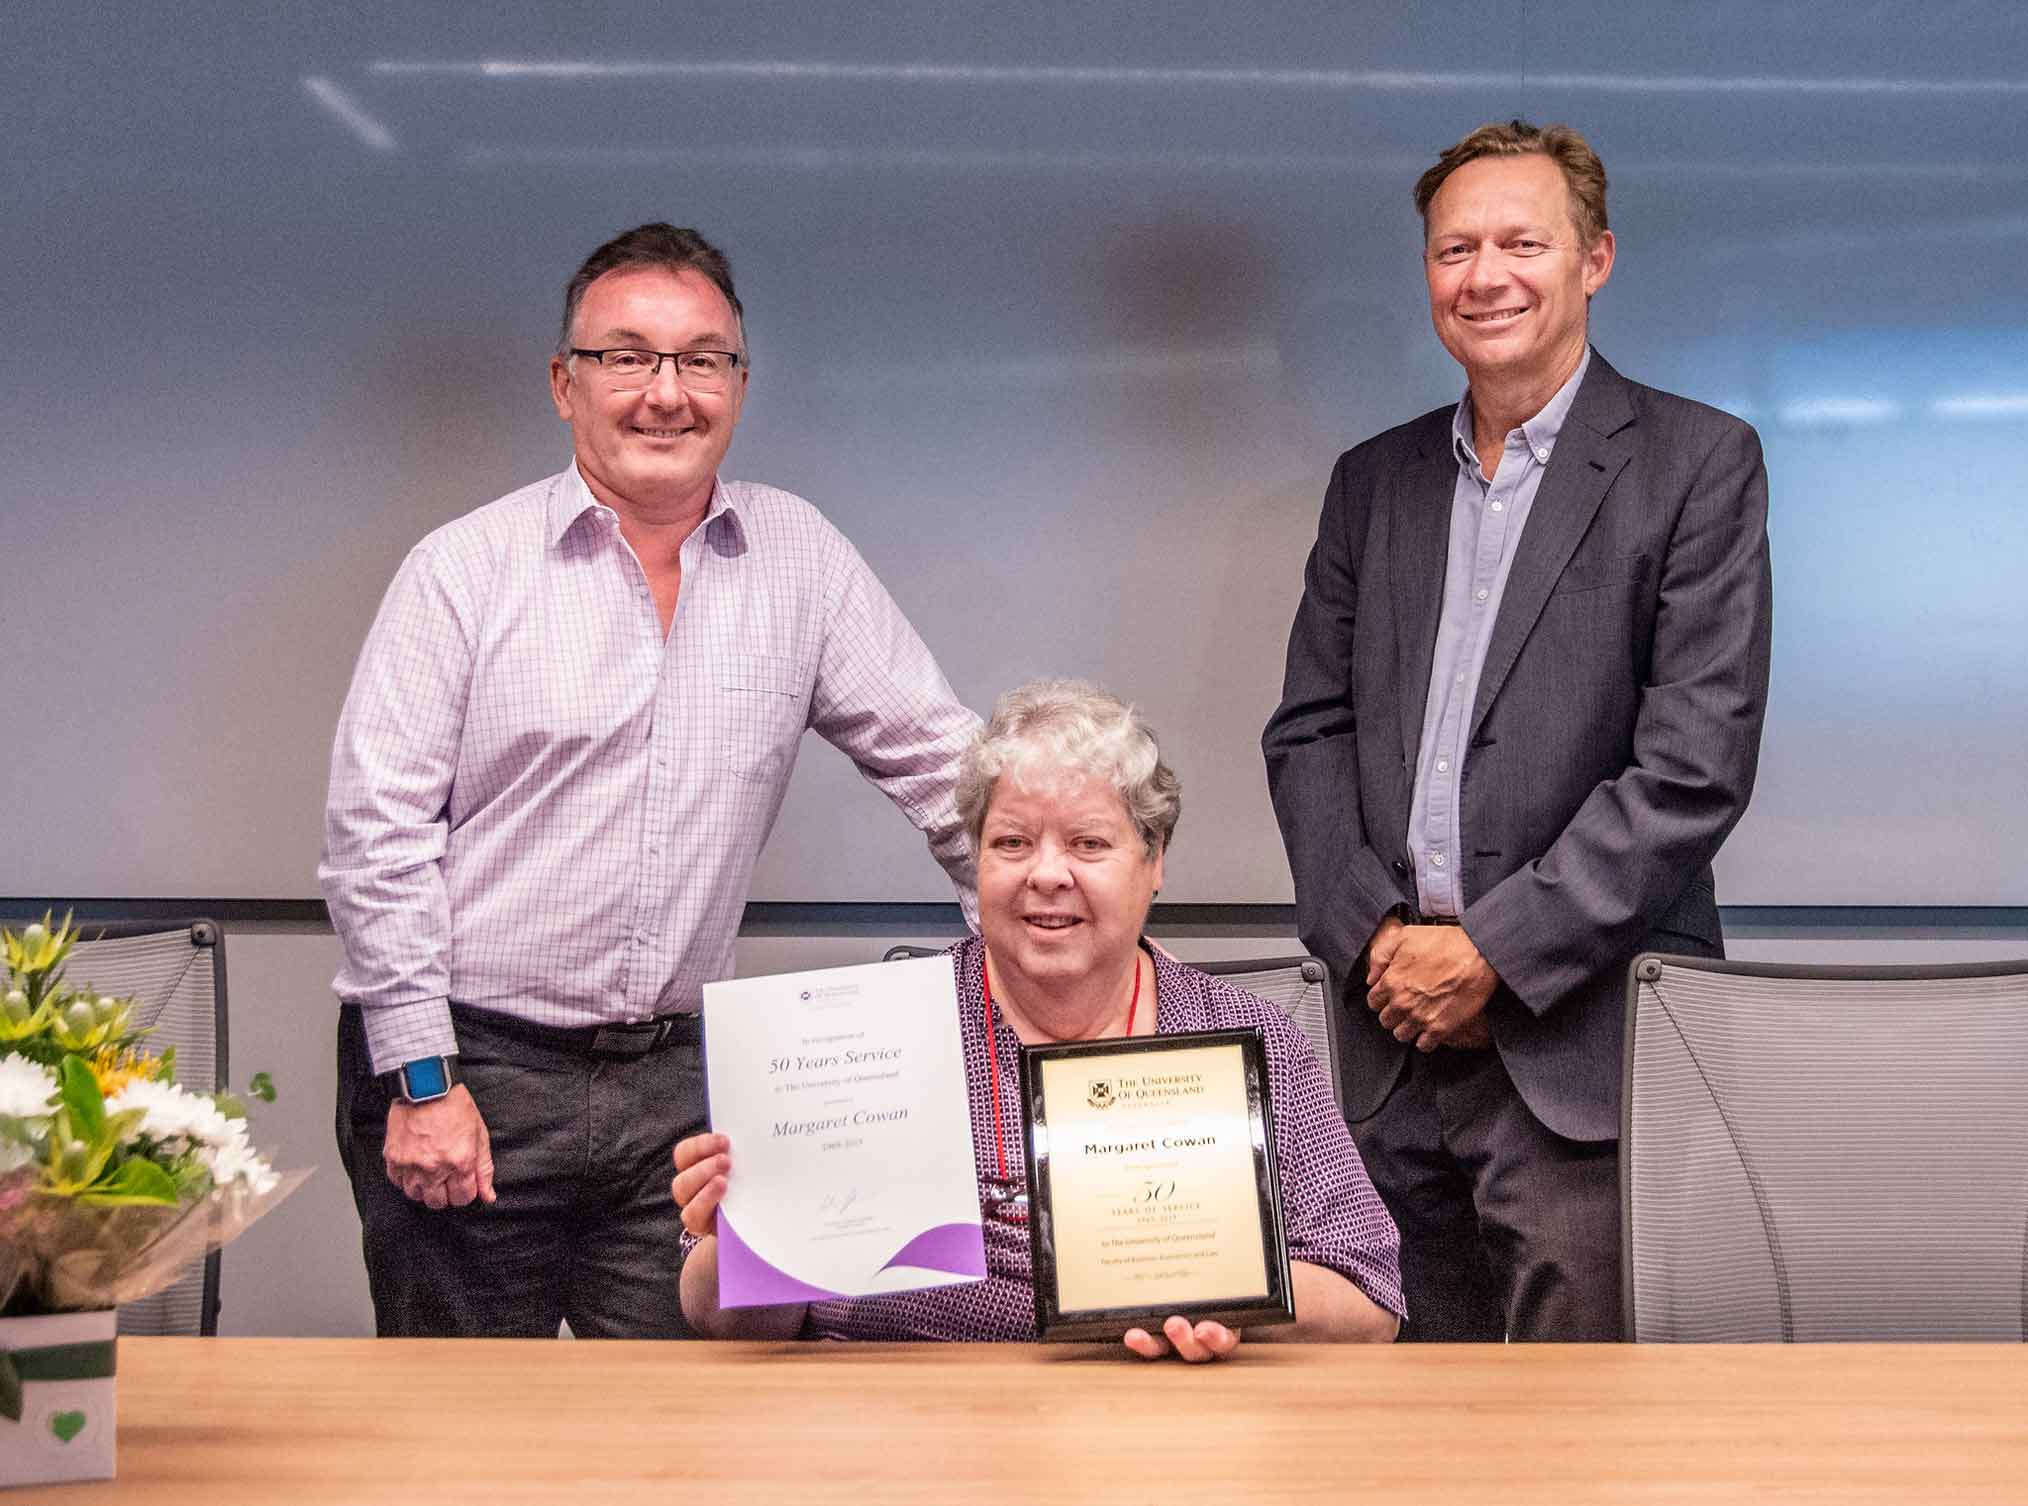 This is an image of Deputy Executive Dean Phil Bodman, award-winner Margaret Cowan, and Executive Dean Professor Andrew Griffiths